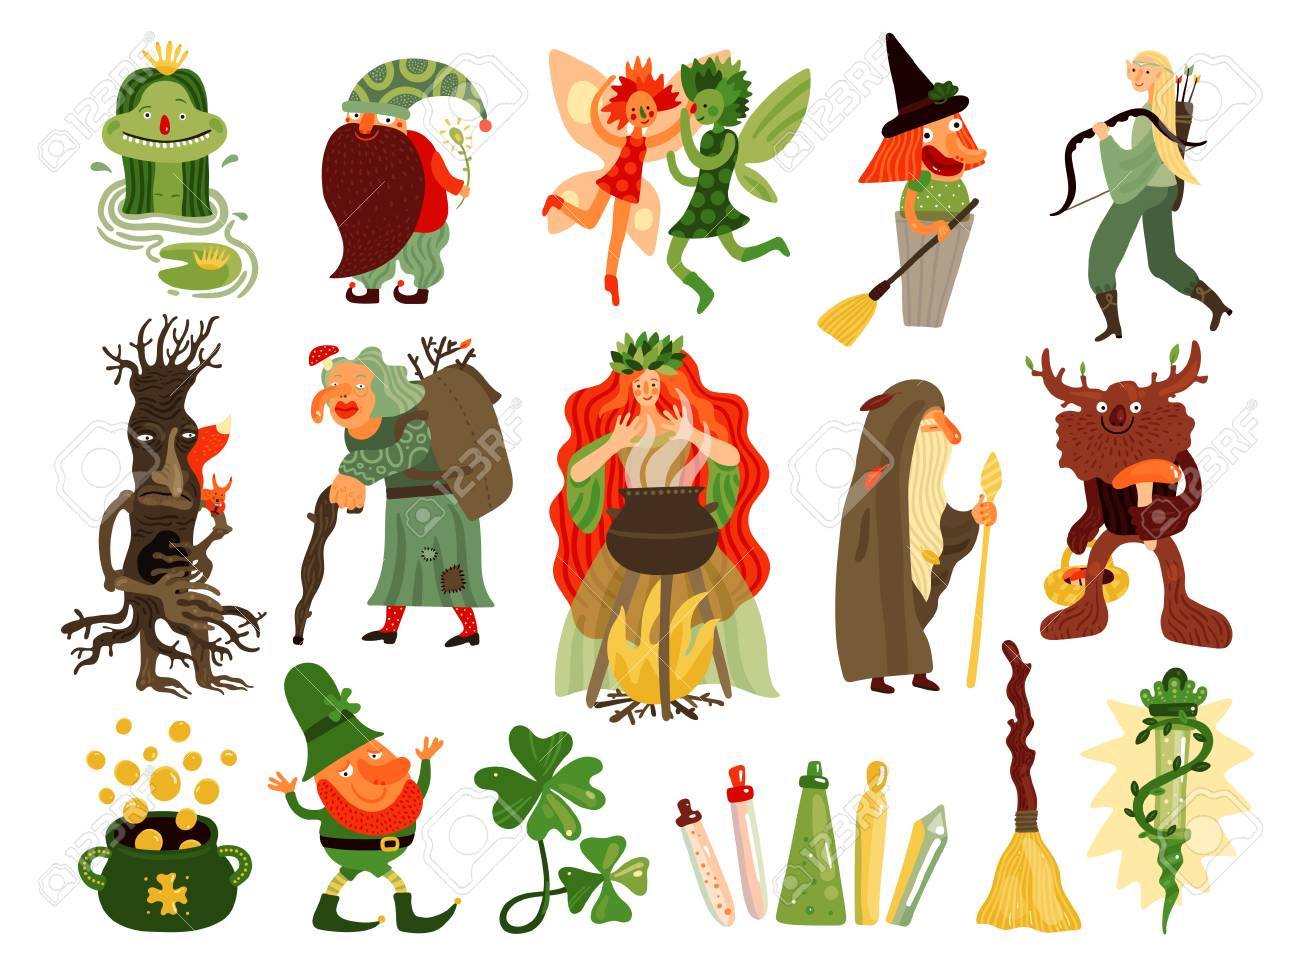 Fairy tale set of mythology and folklore cartoon characters